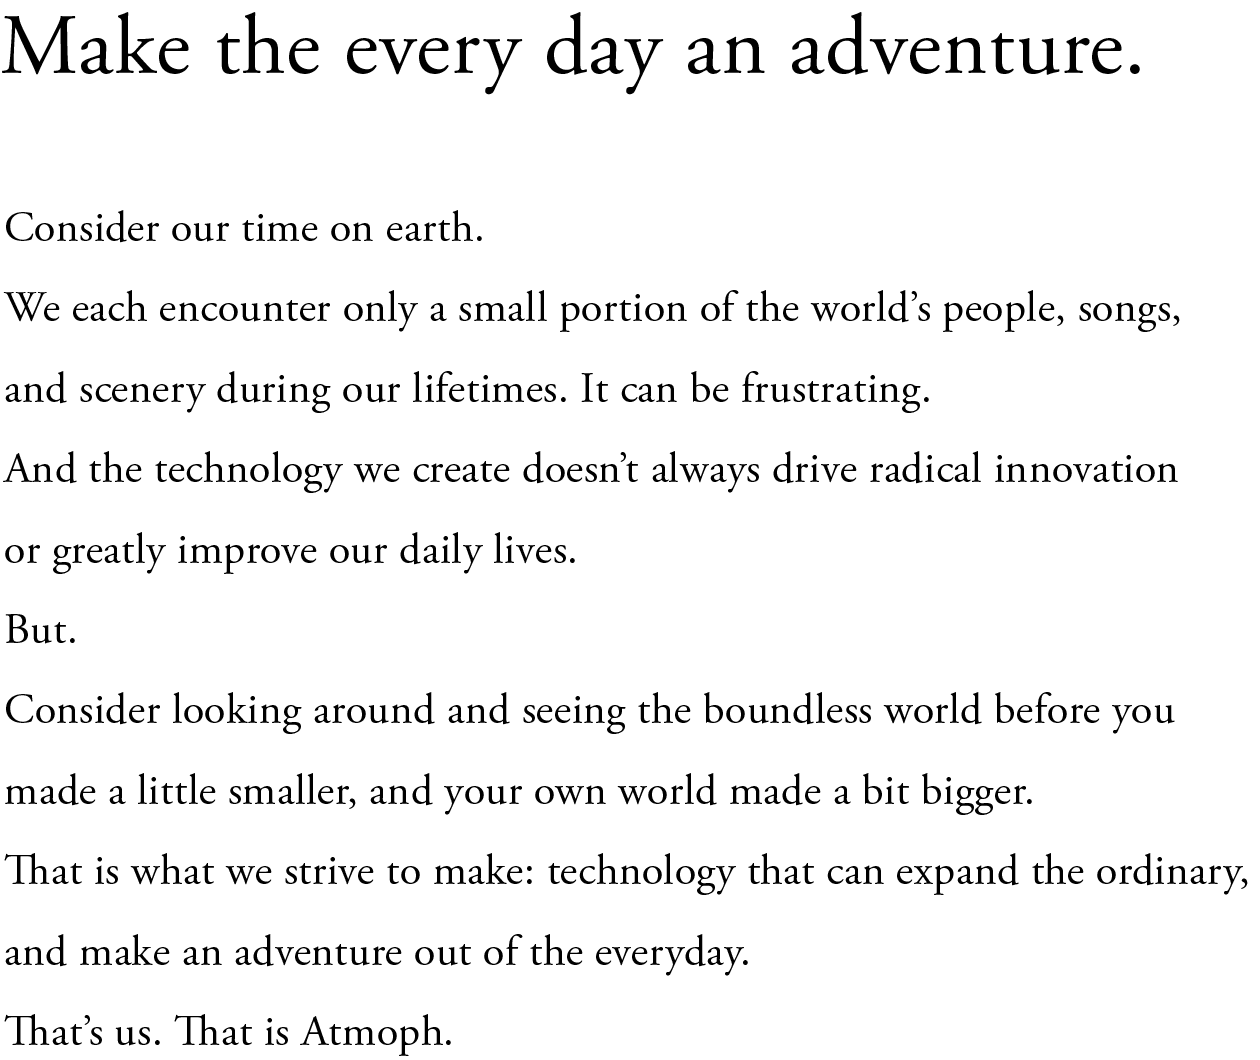 Make the everyday an adventure. Consider our time on earth. We each encounter only a small portion of the world's people, songs, and scenery during our lifetimes. It can be frustrating. And the technology we create doesn't always drive radical innovation or greatly improve our daily lives.  But. Consider looking around and seeing the boundless world before you made a little smaller, and your own world made a bit bigger. That is what we strive to make: technology that can expand the ordinary, and make an adventure out of the everyday. That's us. That is Atmoph.